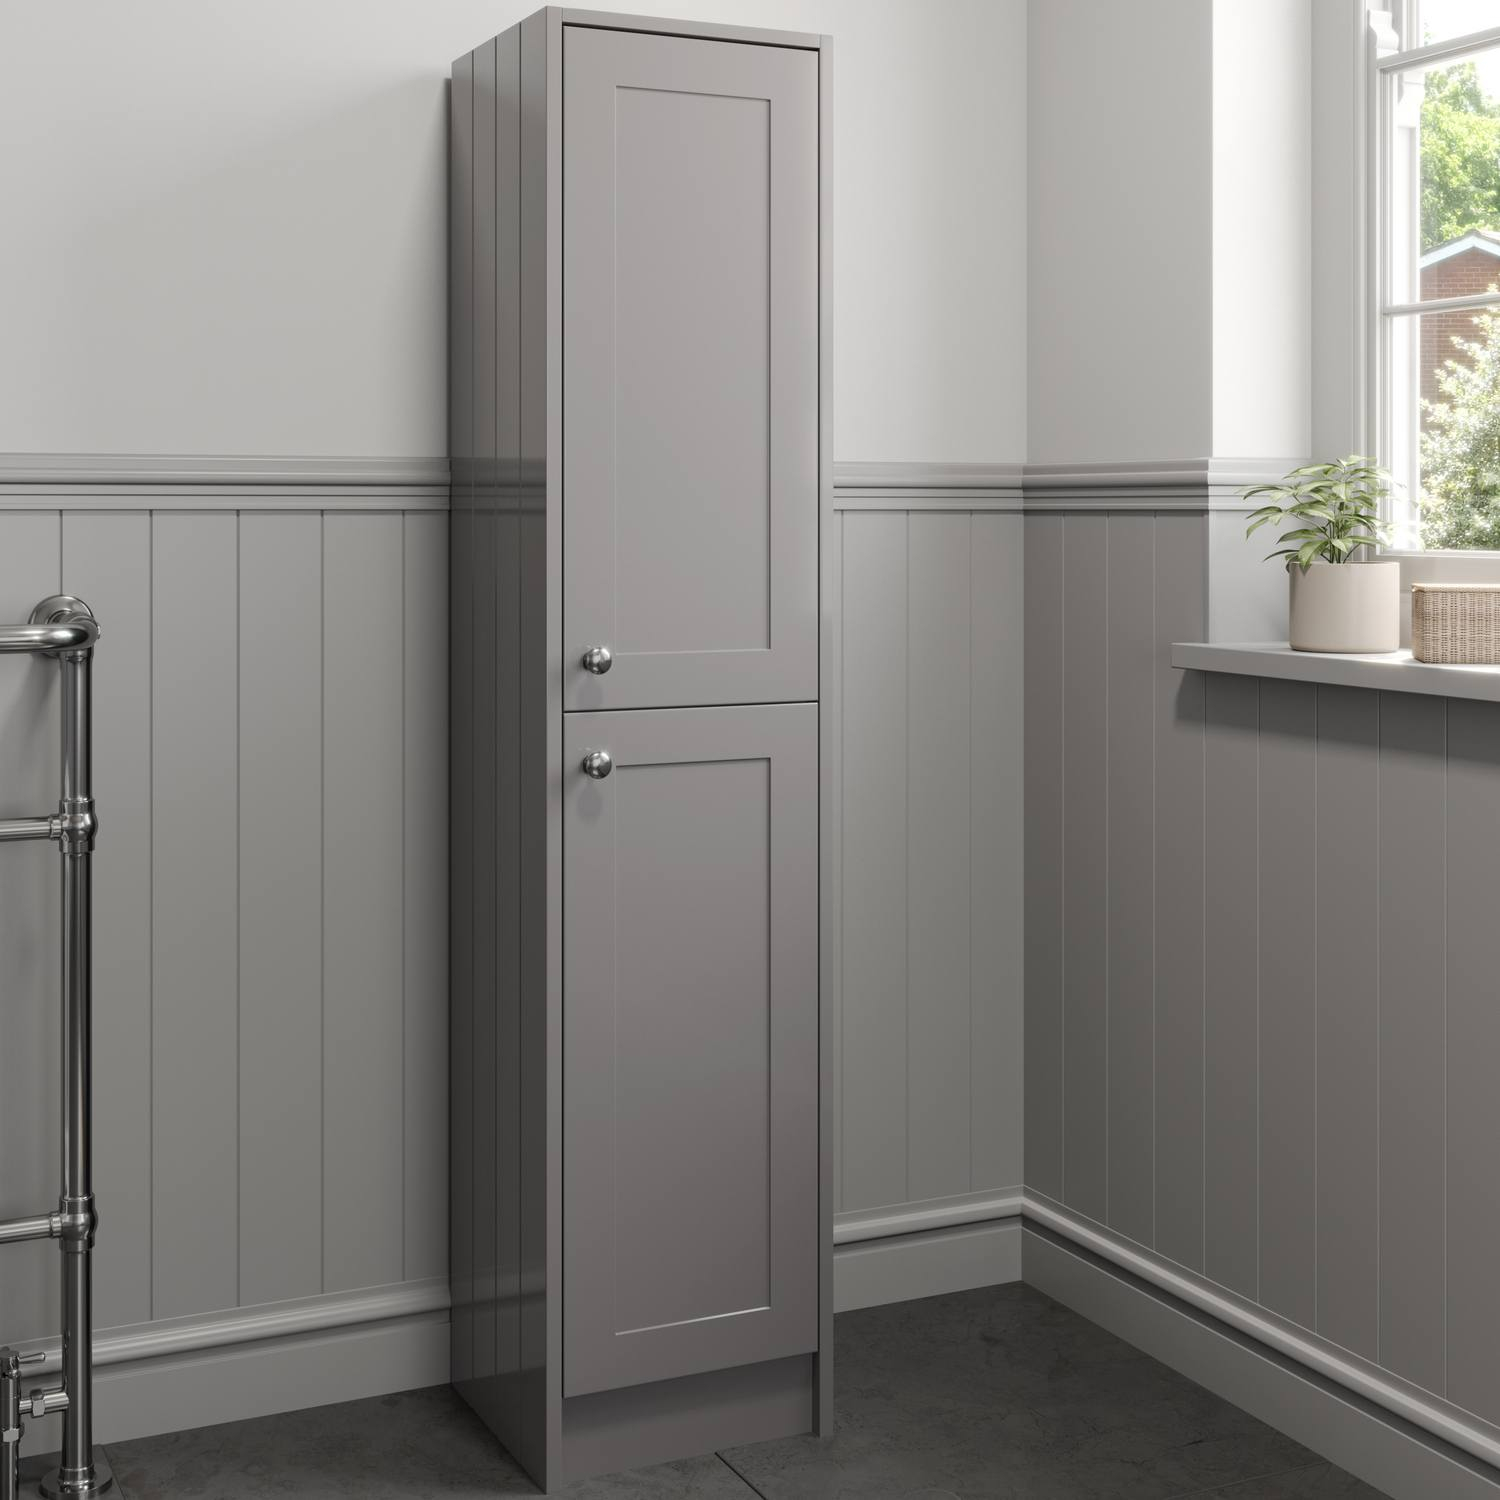 Details About 1600mm Tall Bathroom Storage Cabinet Cupboard Floorstanding Grey Traditional regarding dimensions 1500 X 1500